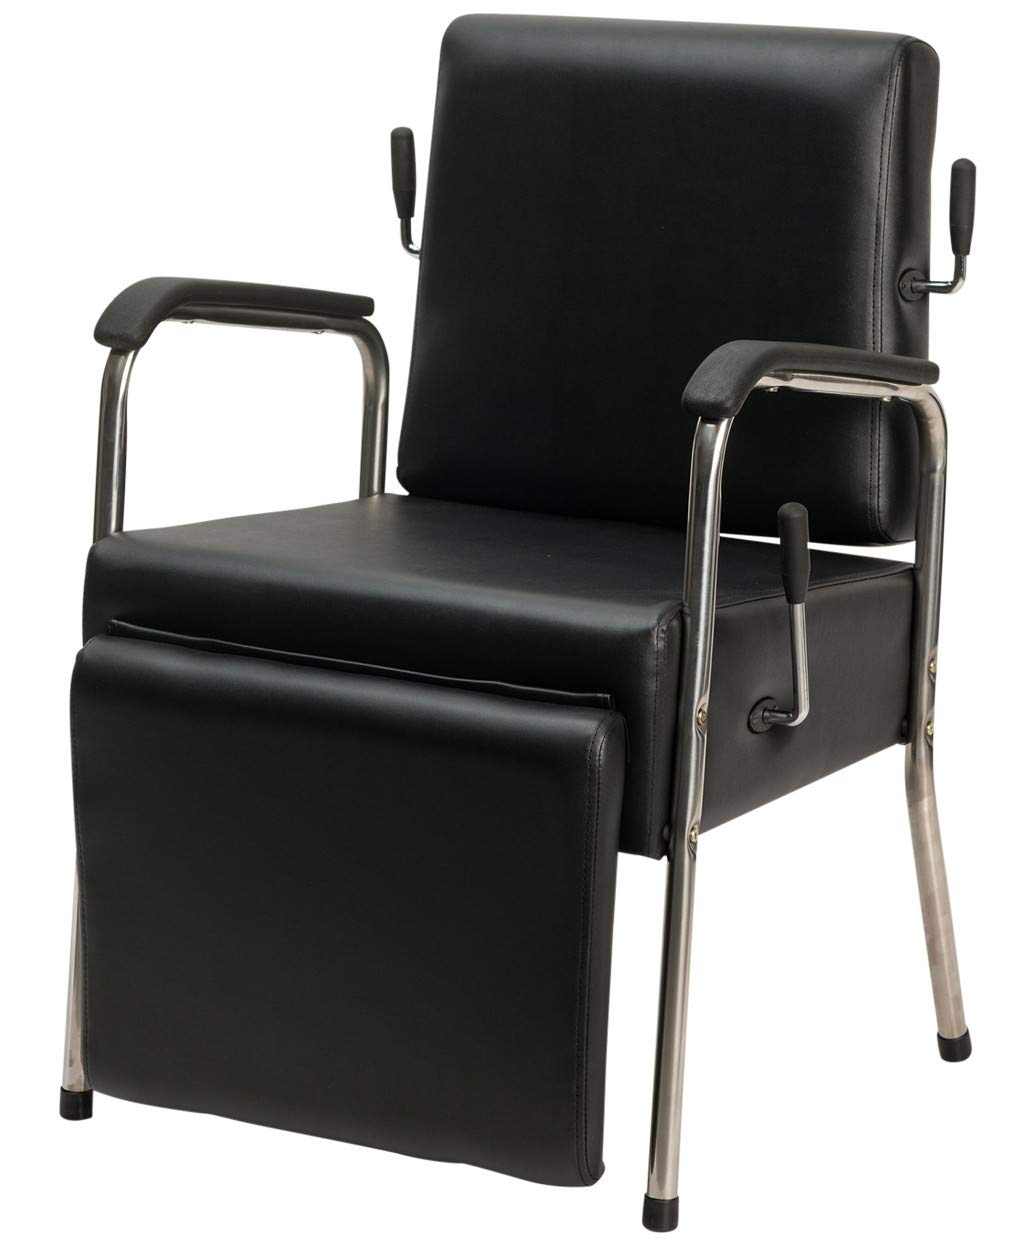 BR Beauty Jamie Professional Salon Shampoo Chair with Legrest